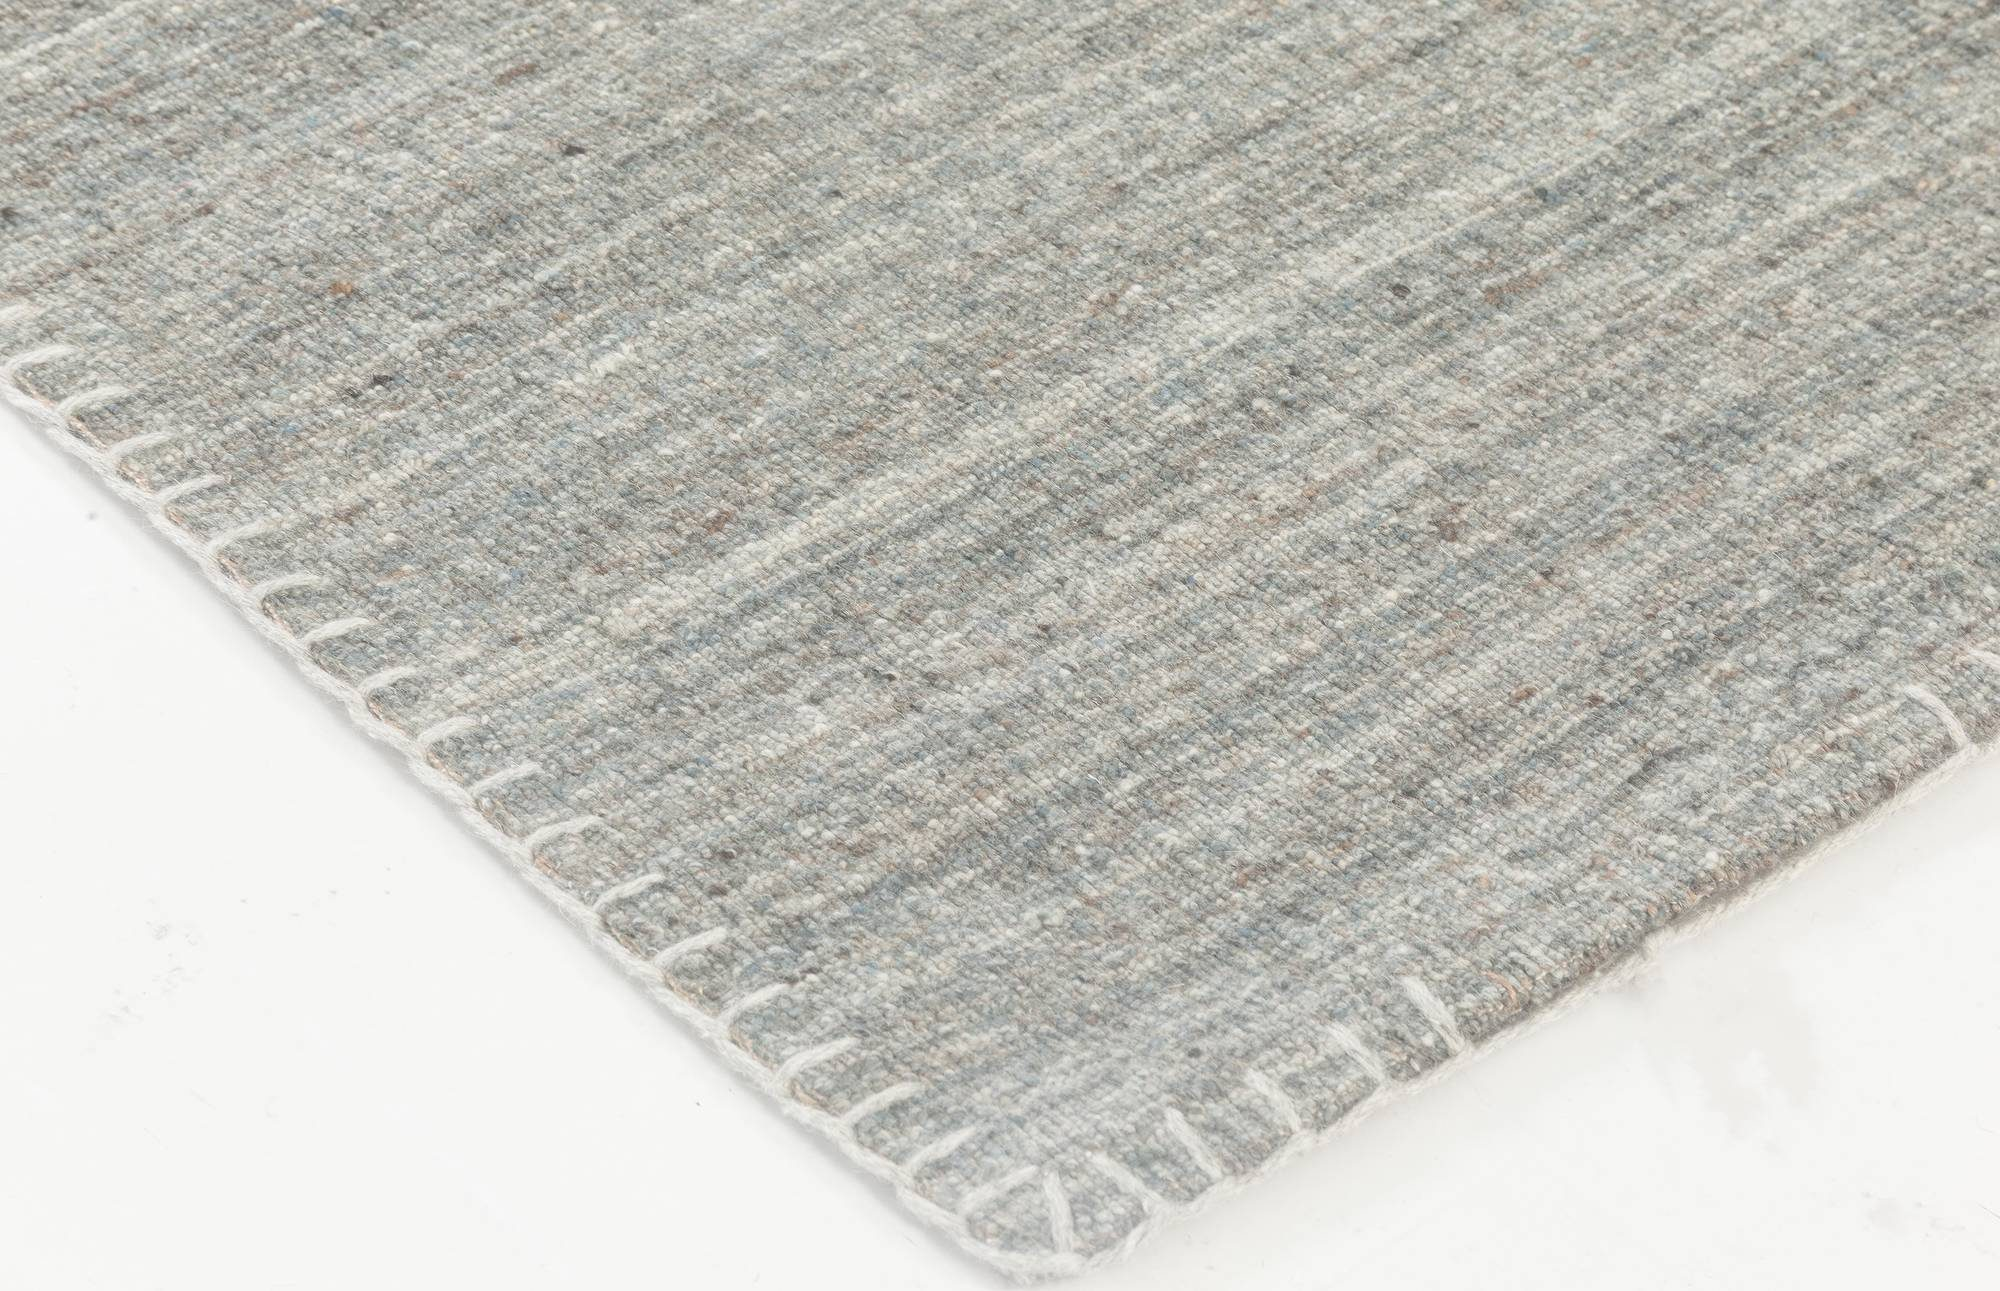 New Bauer Collection Patternless Gray Rug II N11840